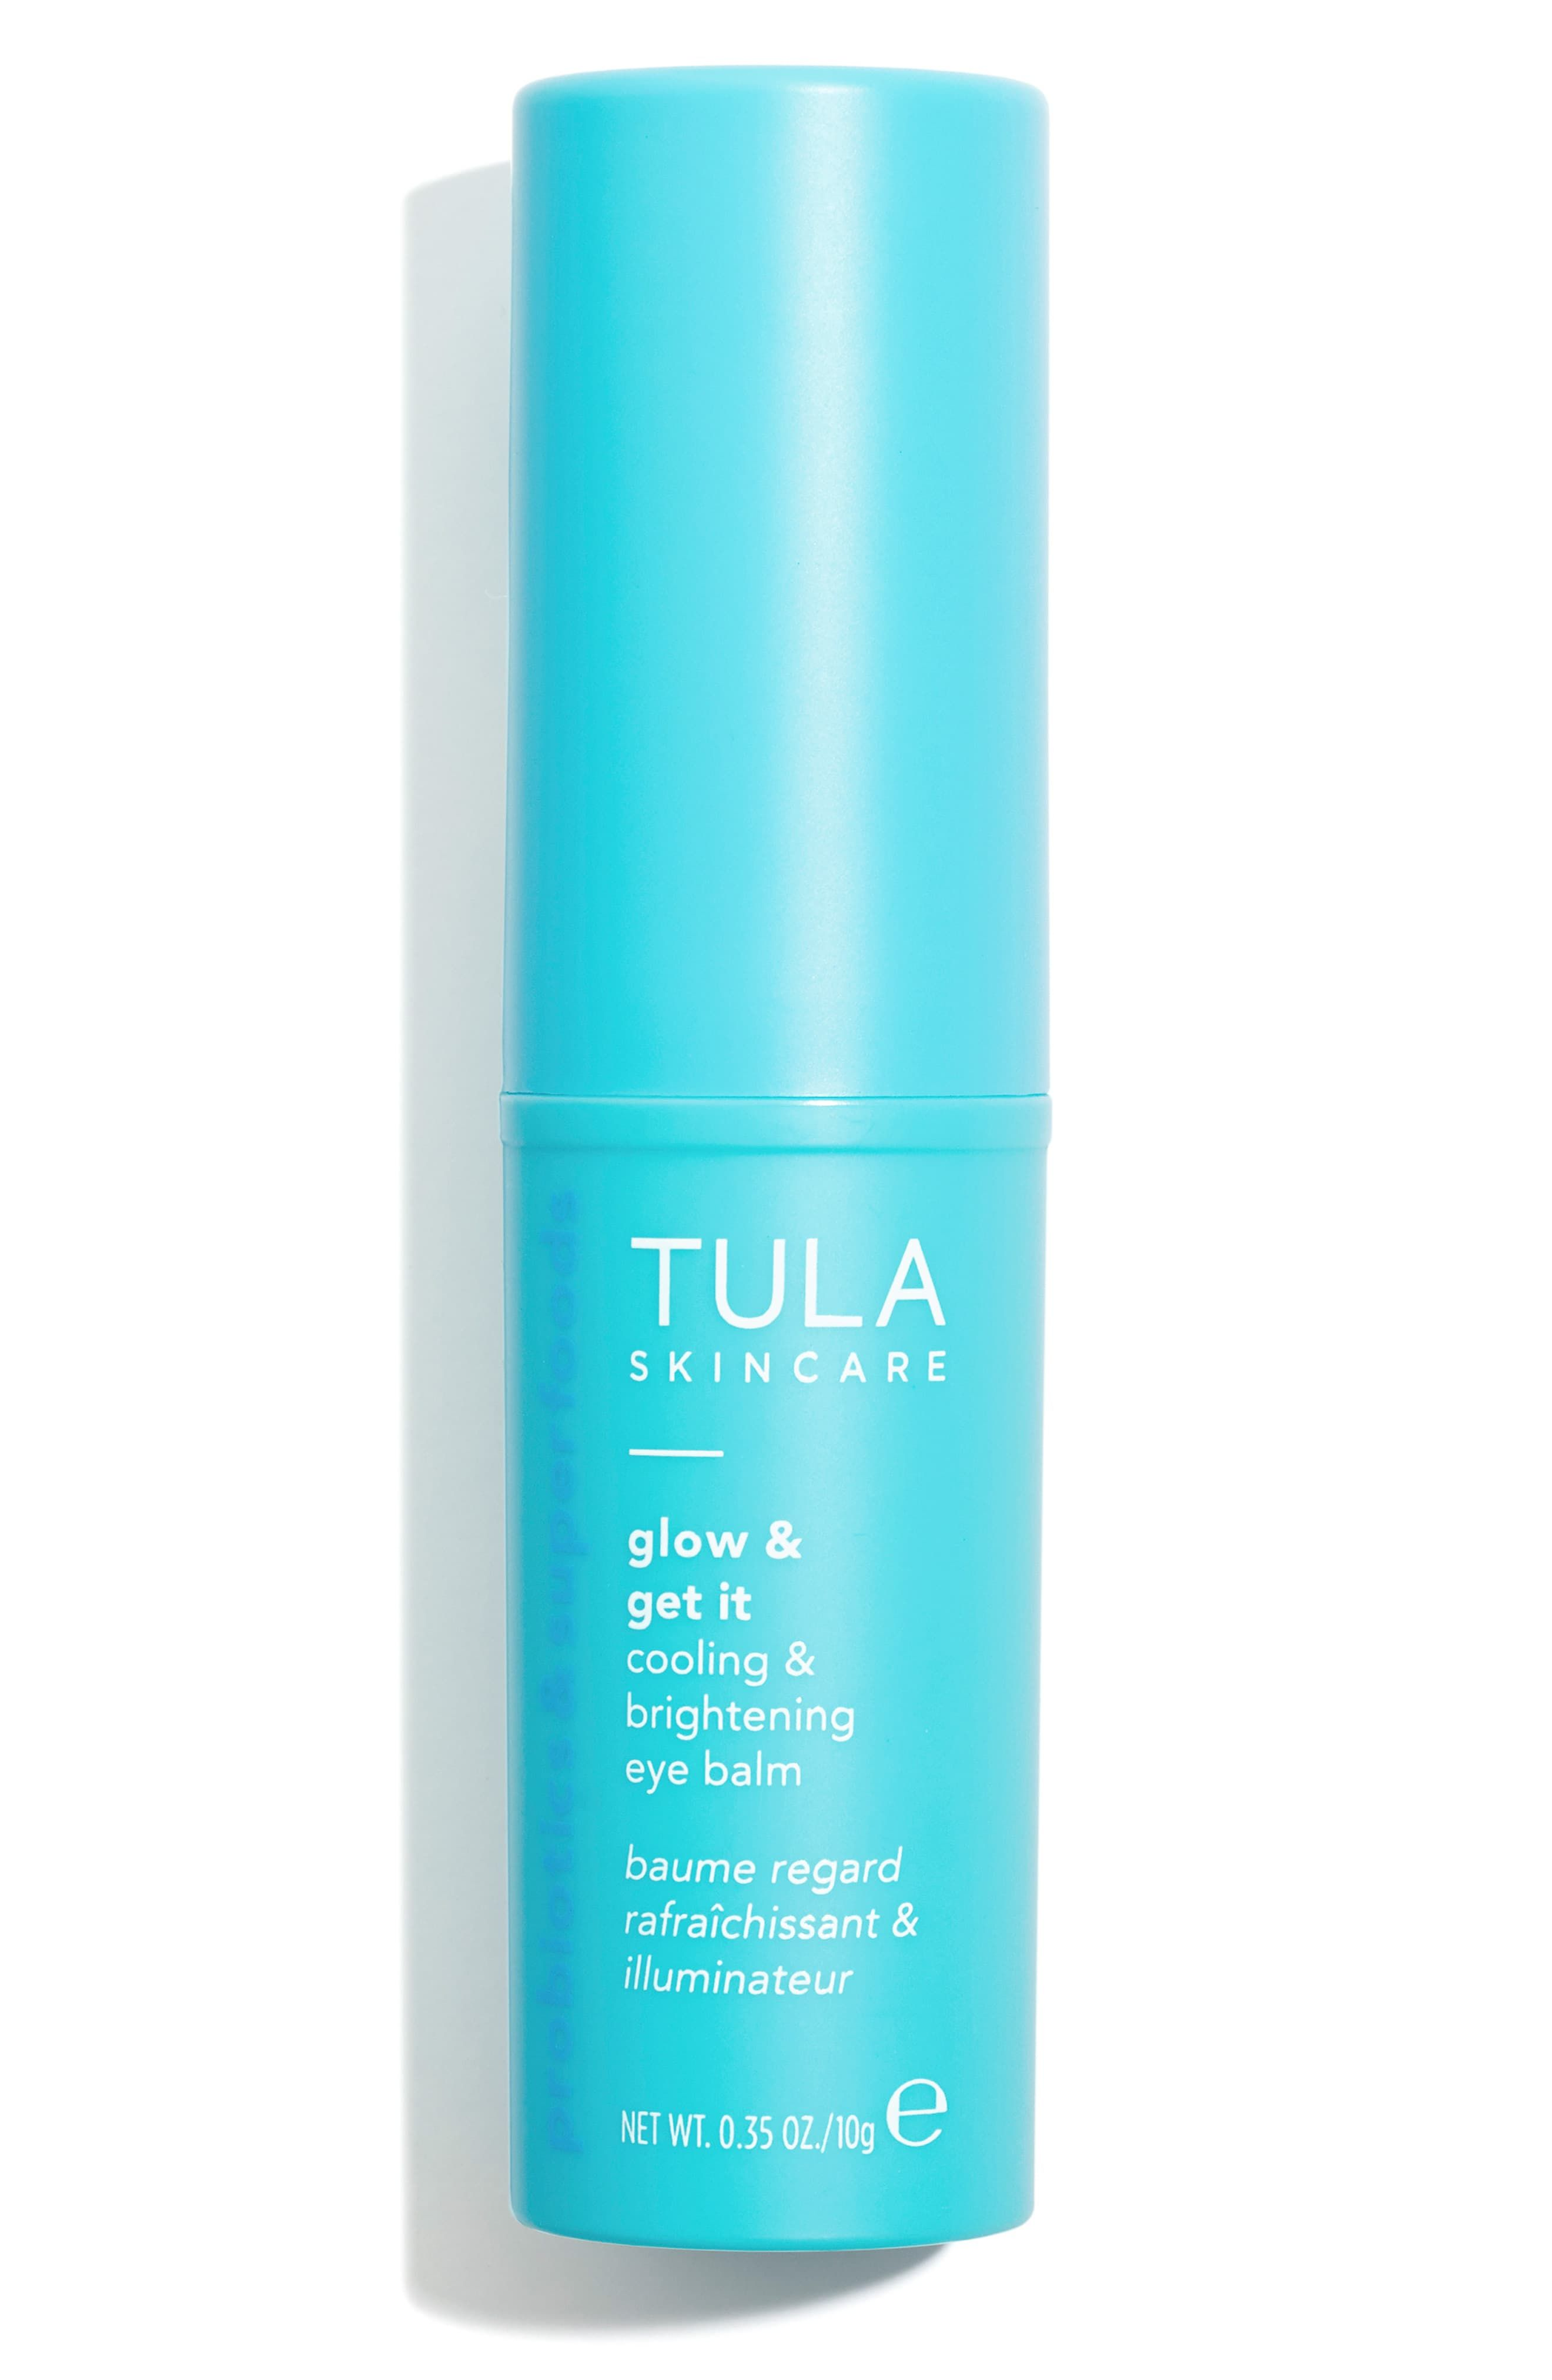 Tula Skincare Glow Get It Cooling Brightening Eye Balm Nordstrom In 2020 Glowing Skincare Tula Skincare The Balm